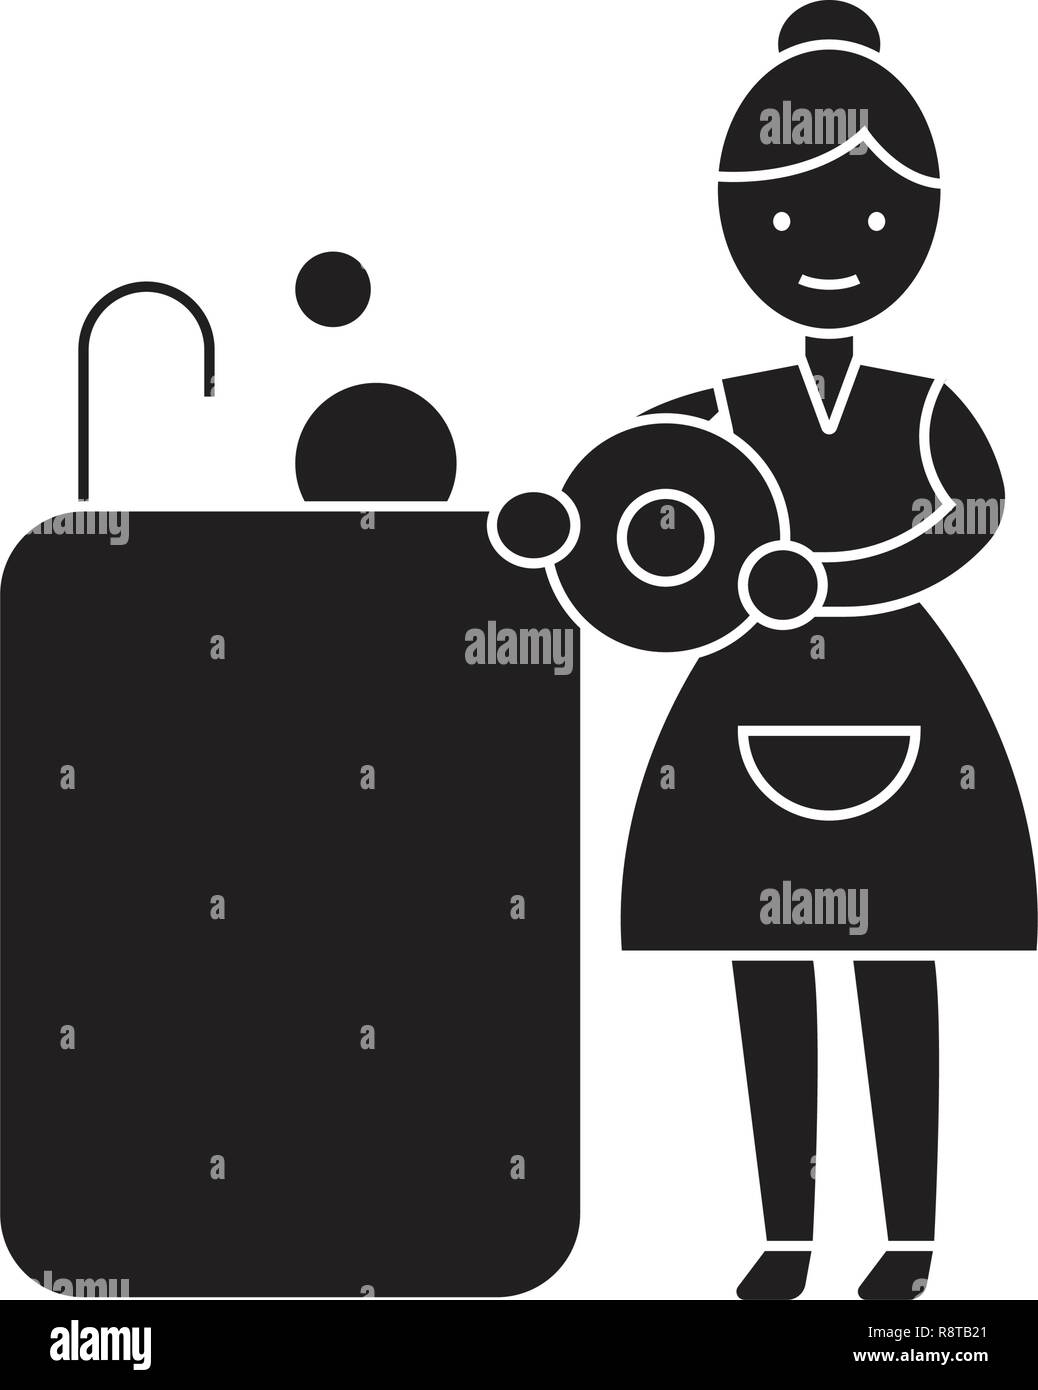 Washing dishes black vector concept icon. Washing dishes flat illustration, sign Stock Vector